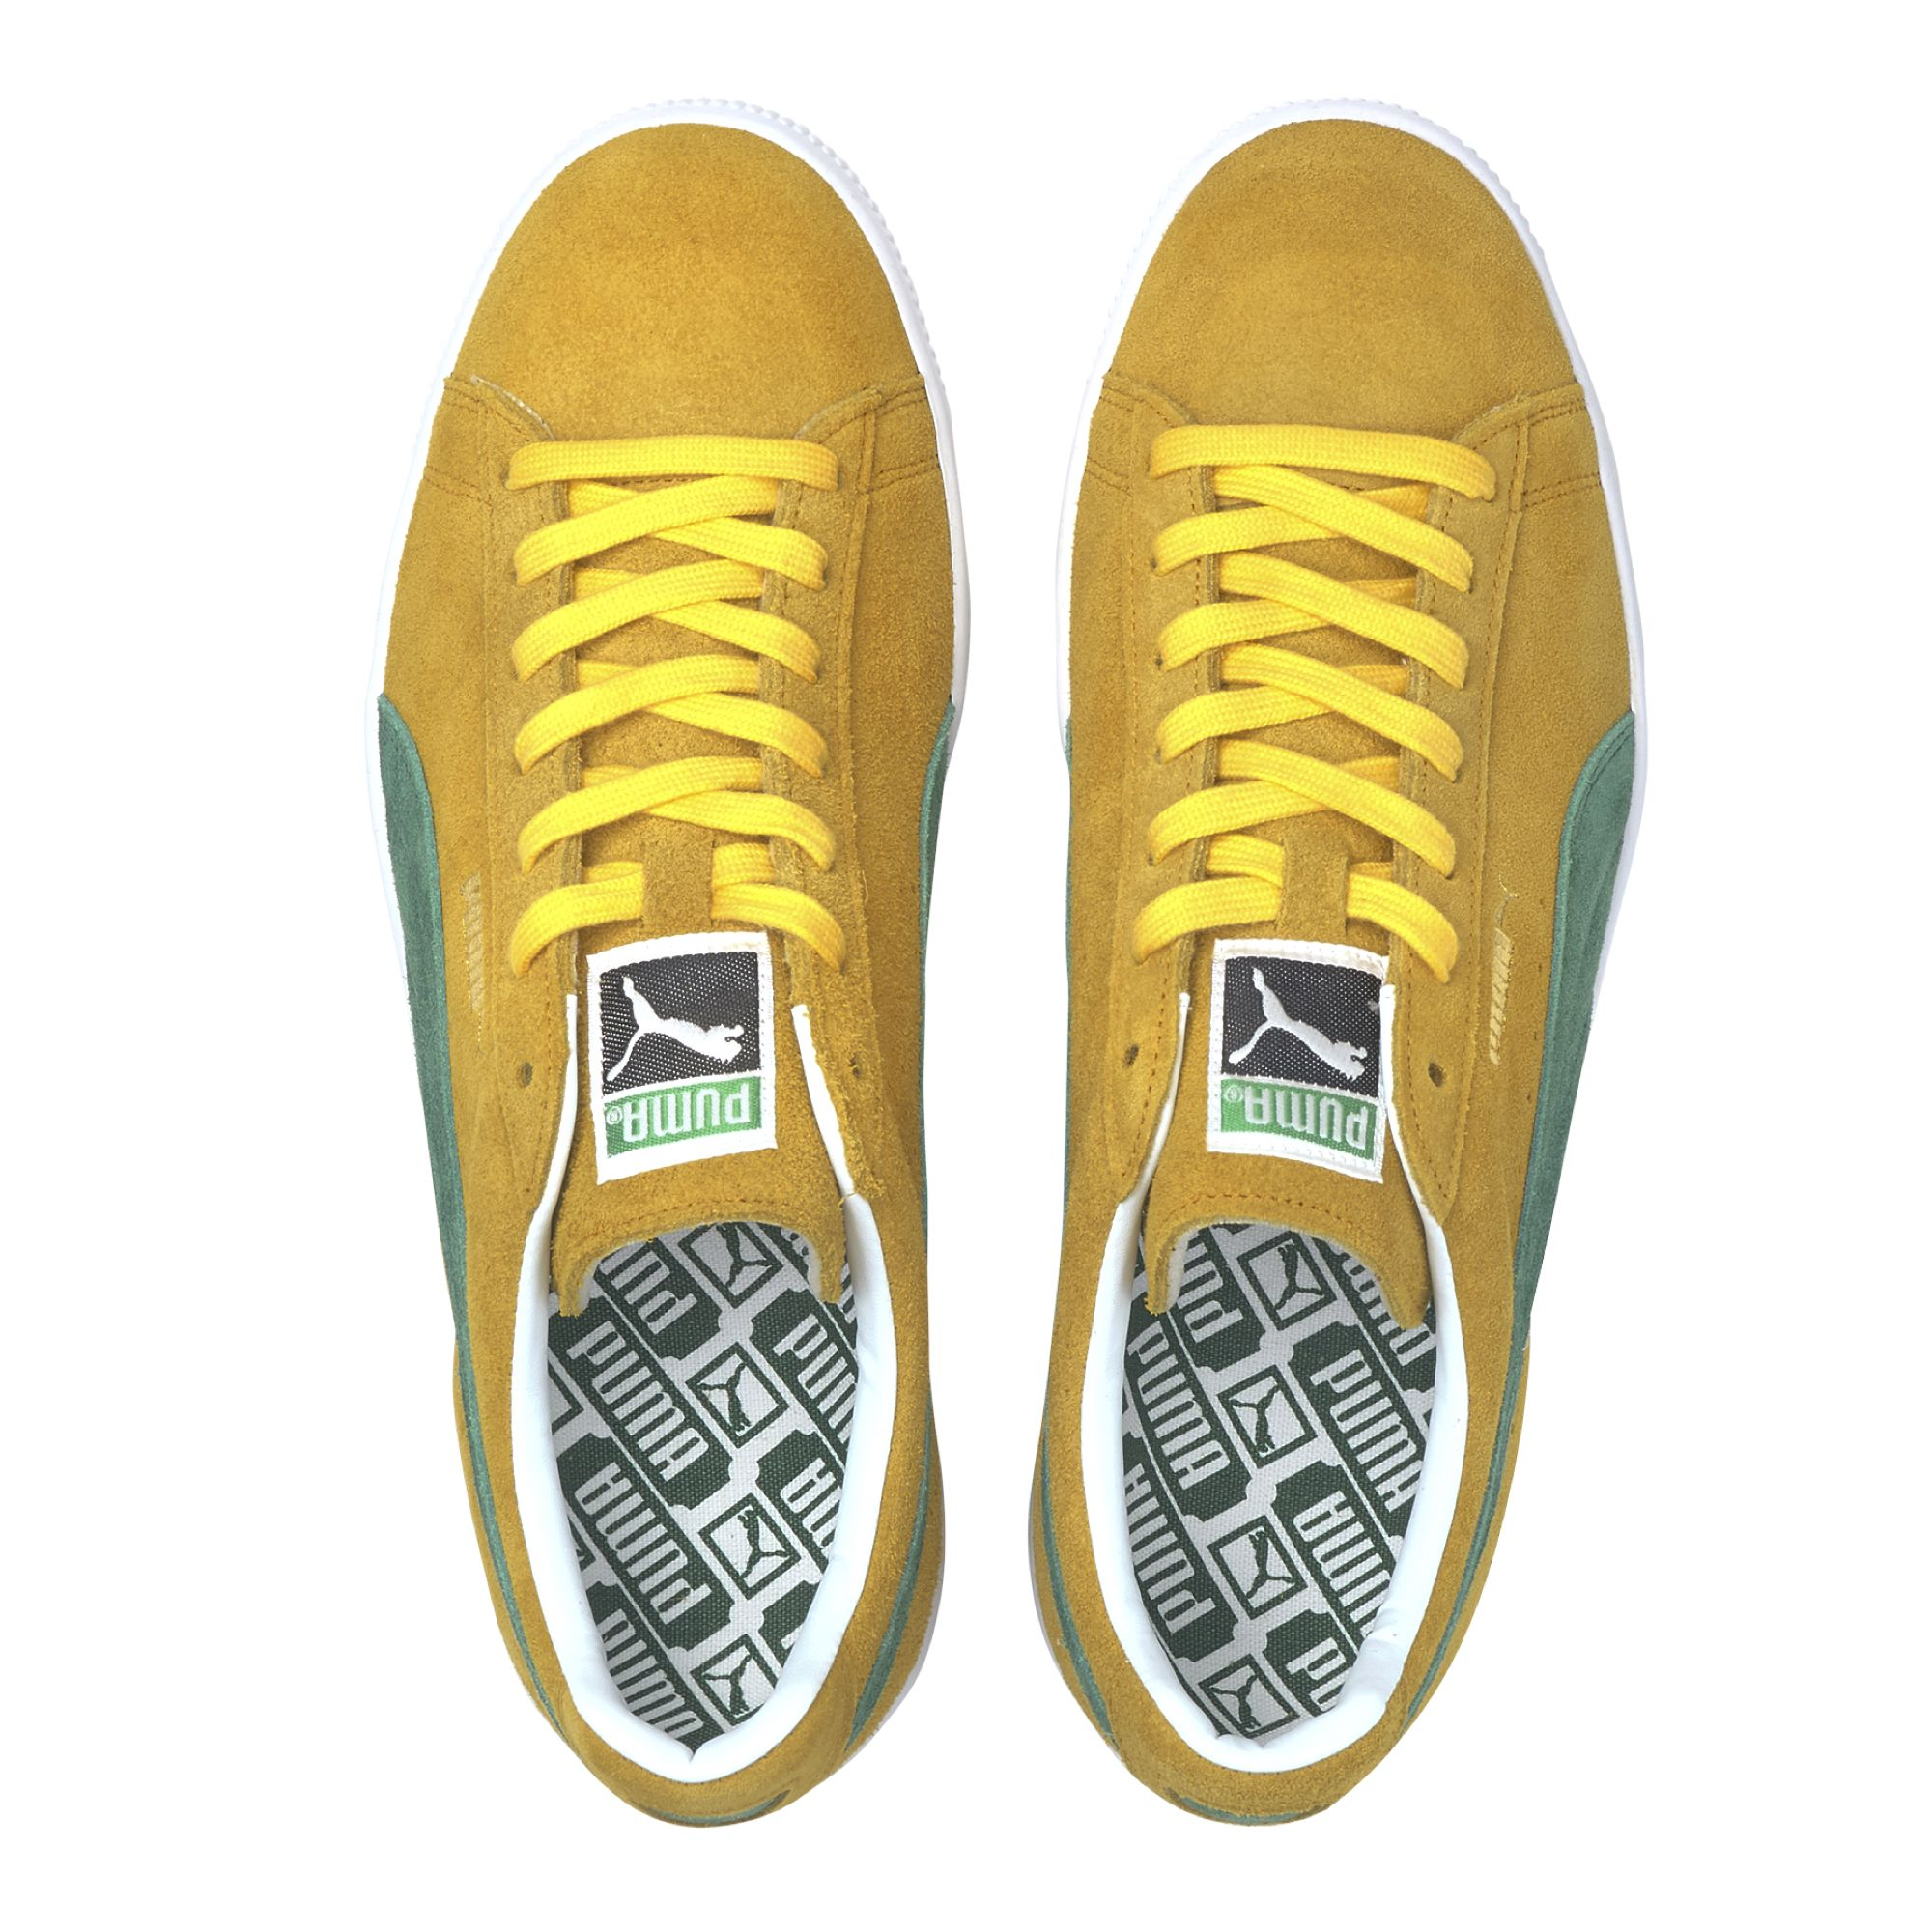 Puma suede vtg made in japan 2 yellow